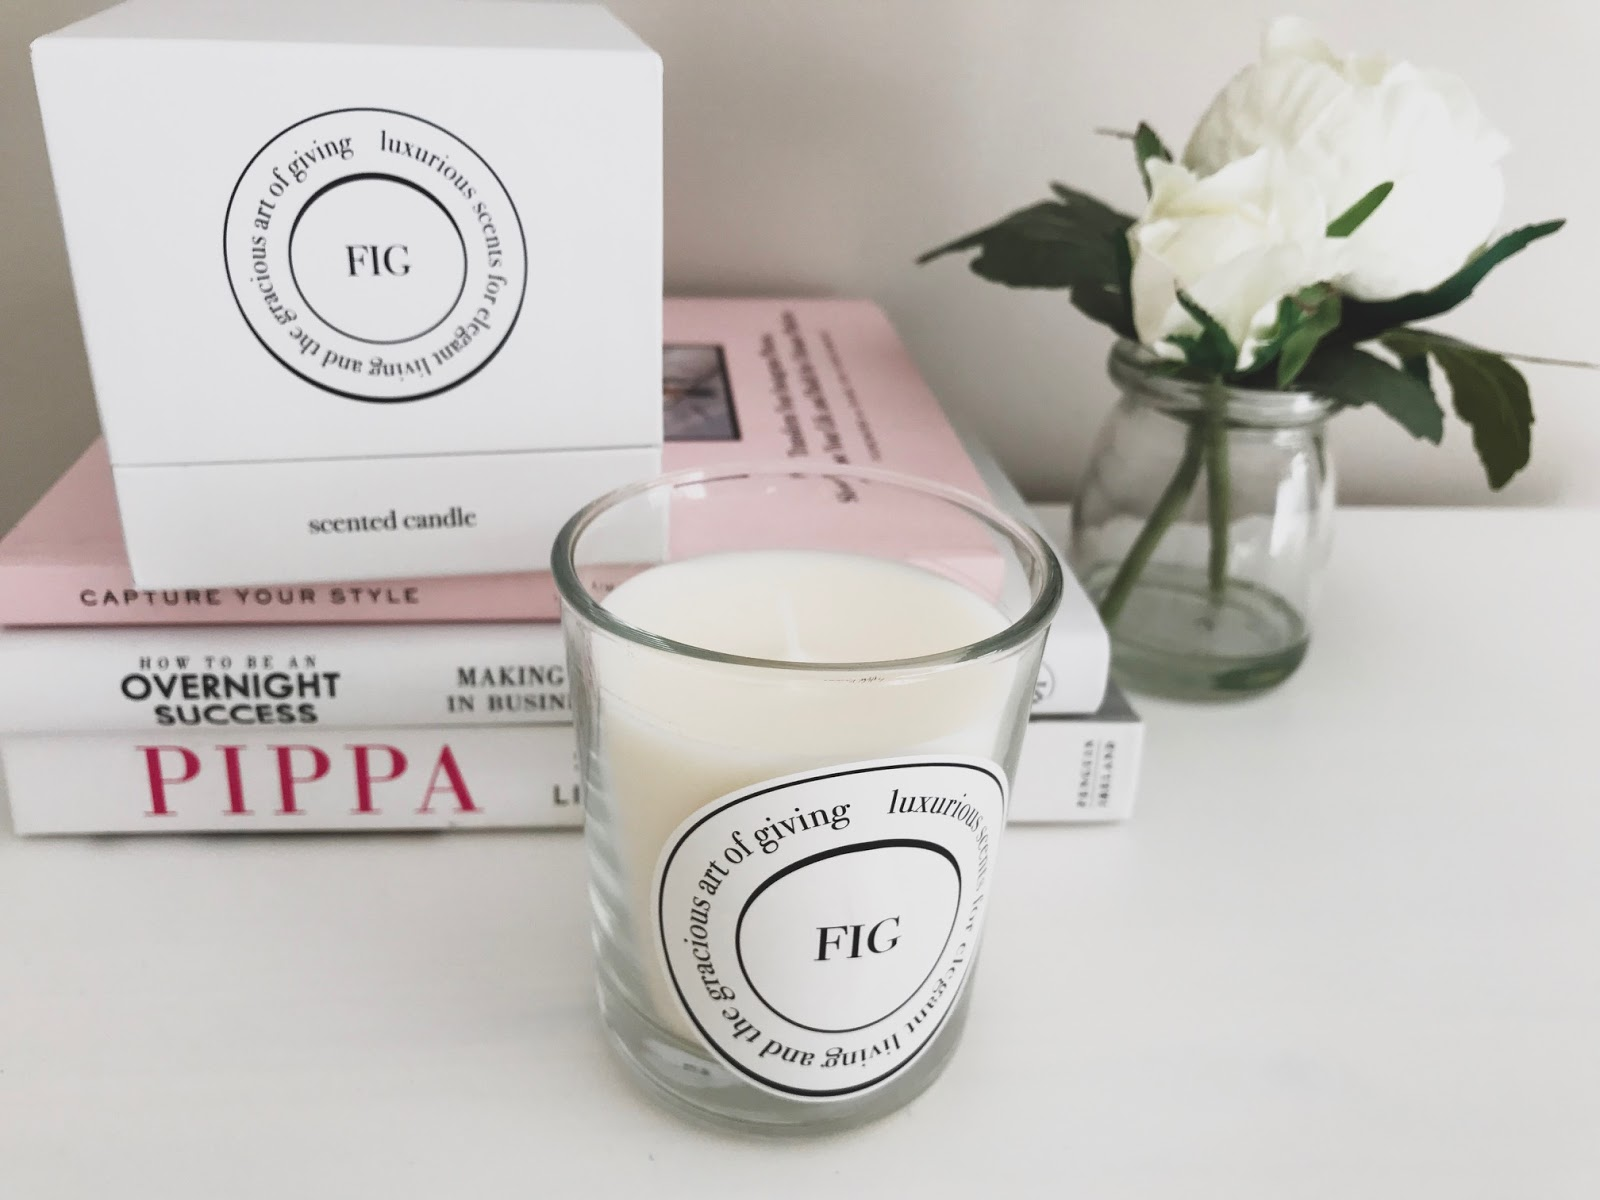 Diptyque Figeur candle dupe